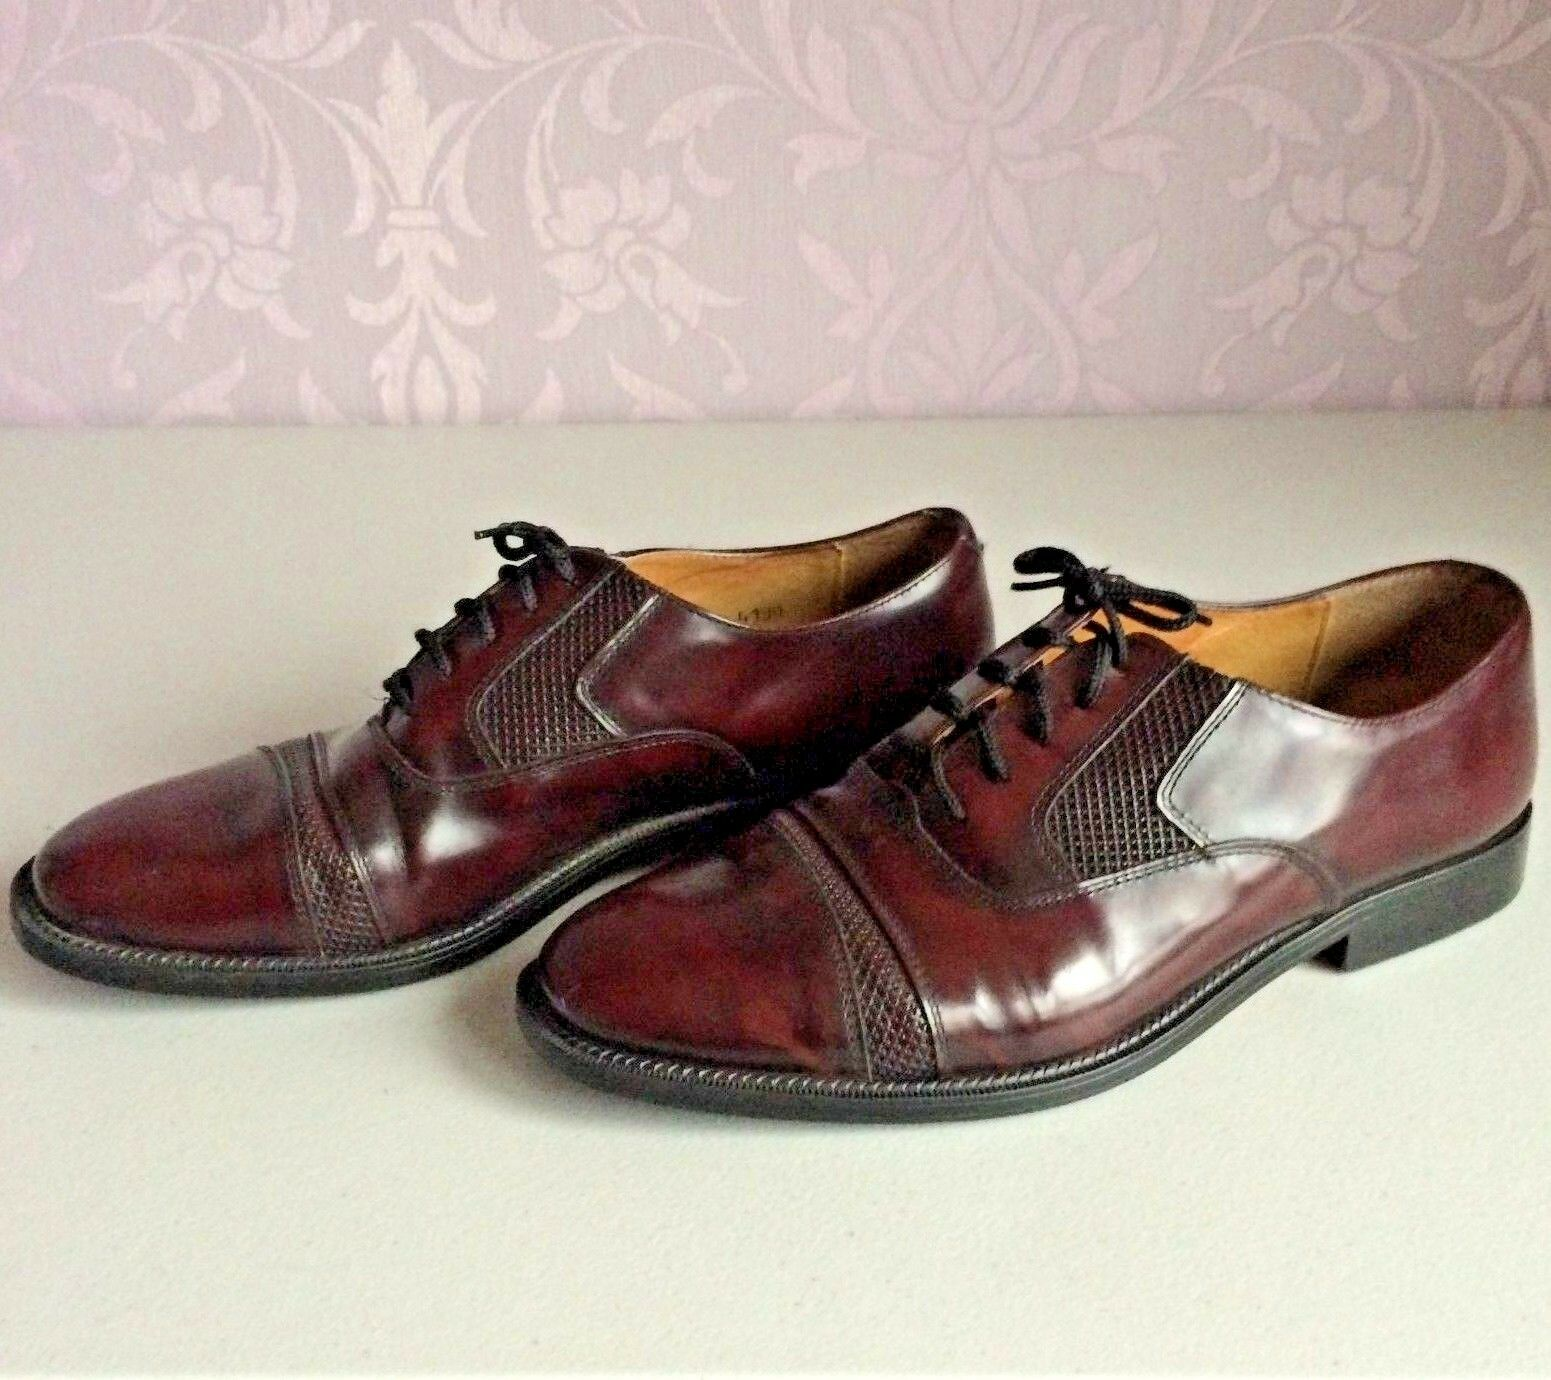 Gino Rossi ARTISAN CRAFTED Oxford IN ITALY Burgundy Leather Oxford CRAFTED schuhe Mens UK 8 VGC 094ba0